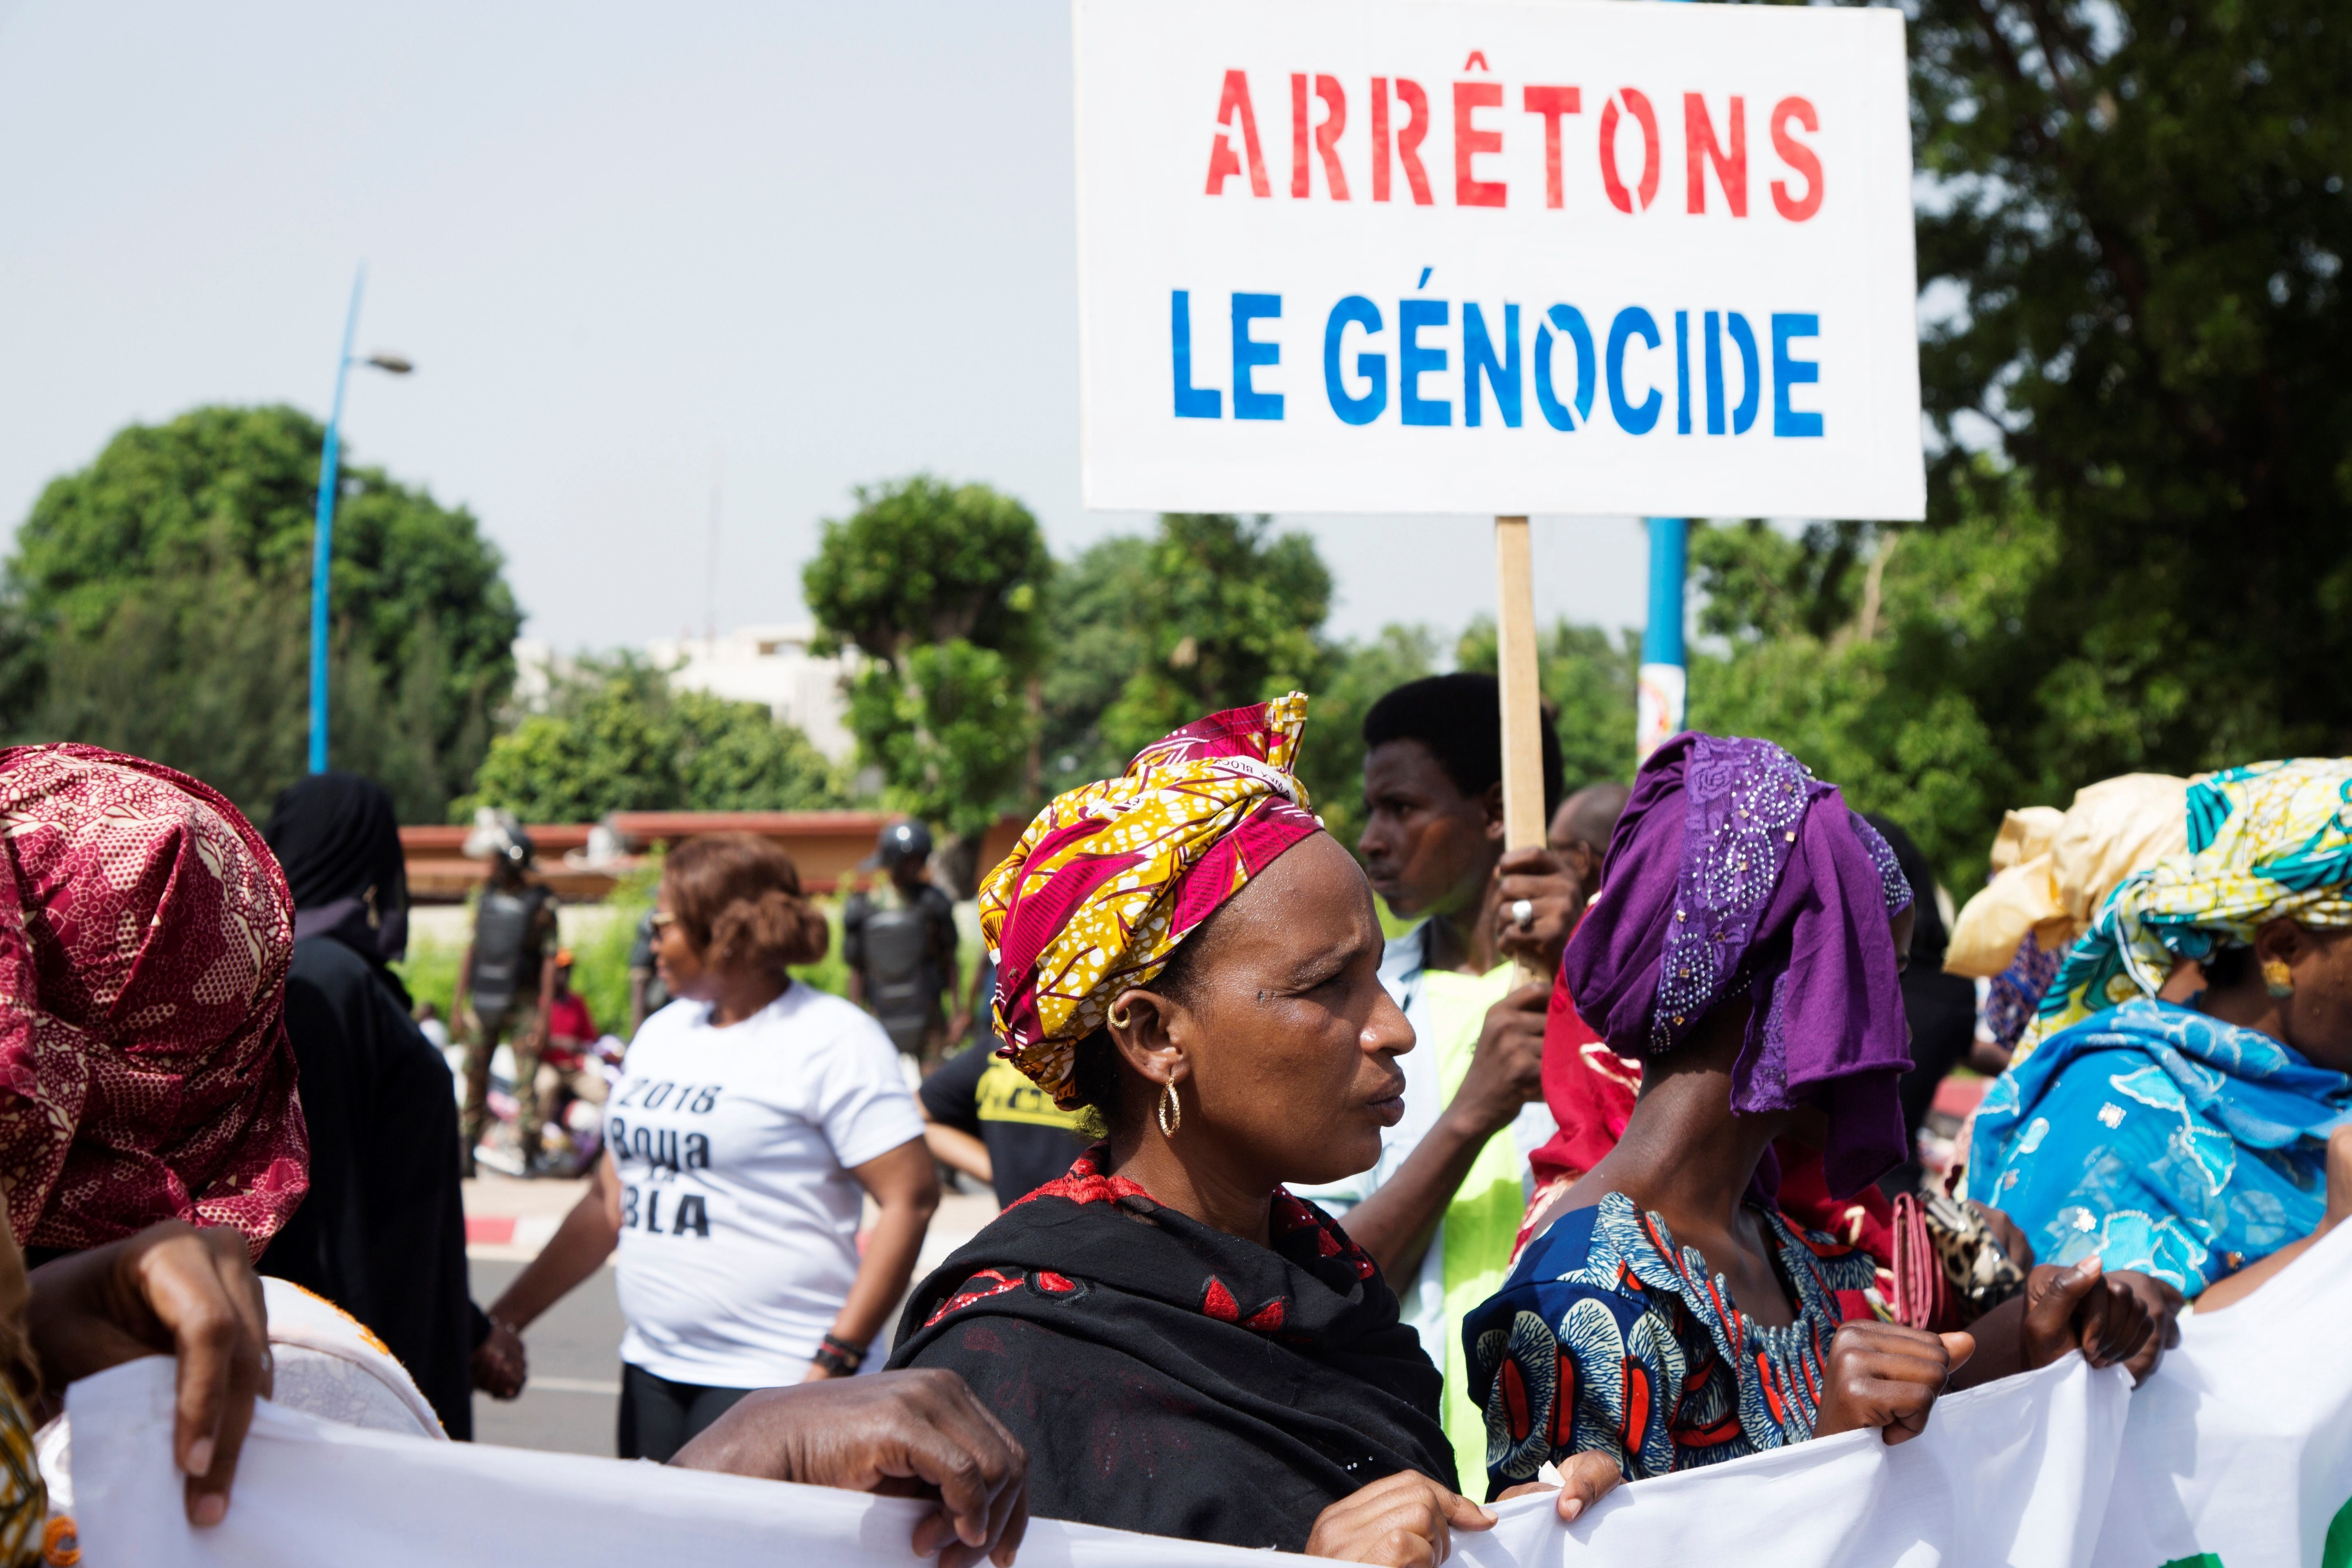 Malian women carry a banner 'Stop Genocide' as they take part in a march on June 30, 2018 in Bamako organised by the Mouvement Peul, an organisation of ethnic Fulani people, in response to a massacre in Koumaga, Mali. - On June 23, at least 32 civilians were killed and ten are missing following an attack in central Mali, believed to have been carried out by Muslim Fulani hunters. (Photo by ANNIE RISEMBERG / AFP)        (Photo credit should read ANNIE RISEMBERG/AFP/Getty Images)